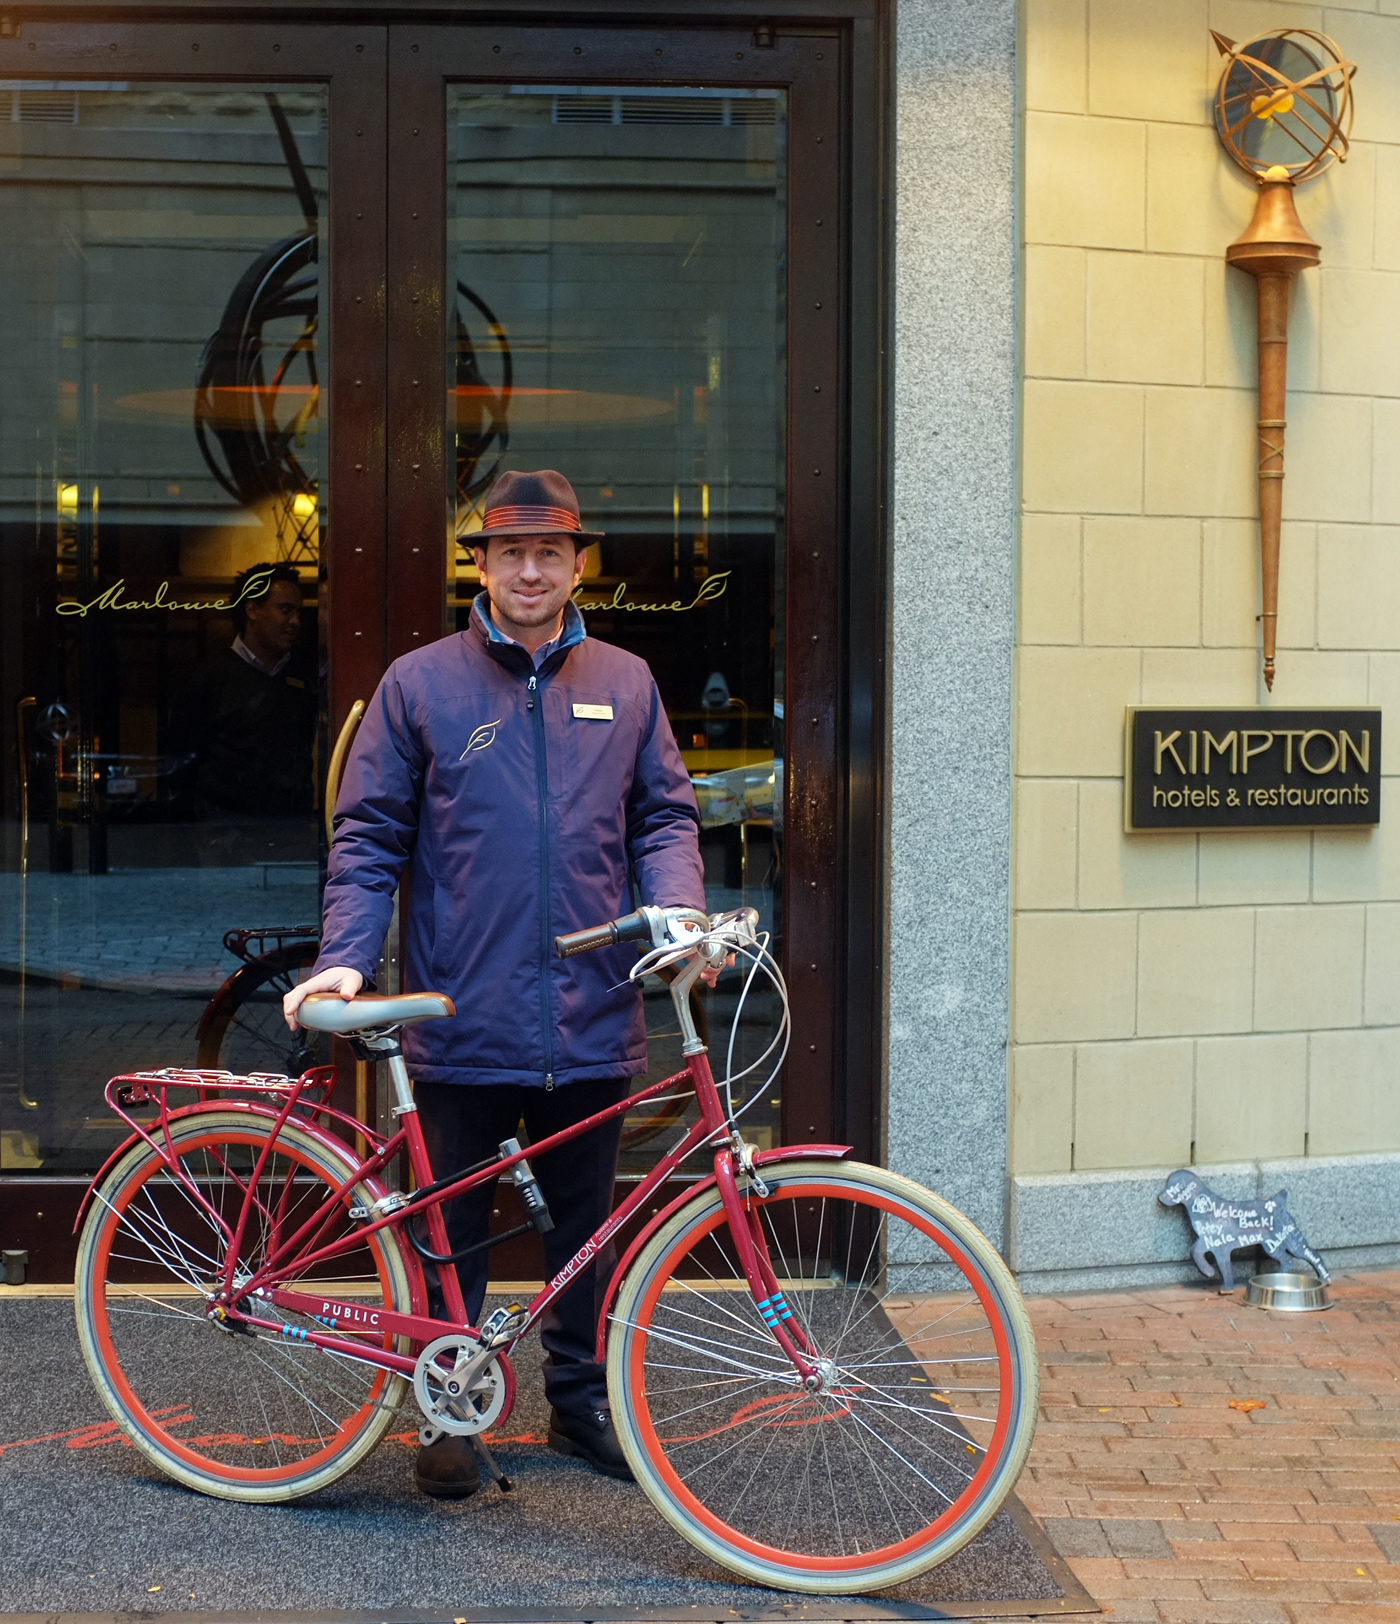 Hotel Marlowe in Cambridge, MA has Public mixte bikes designed for city exploring complete with locks for when your nose, eyes or stomach demands a rest stop.